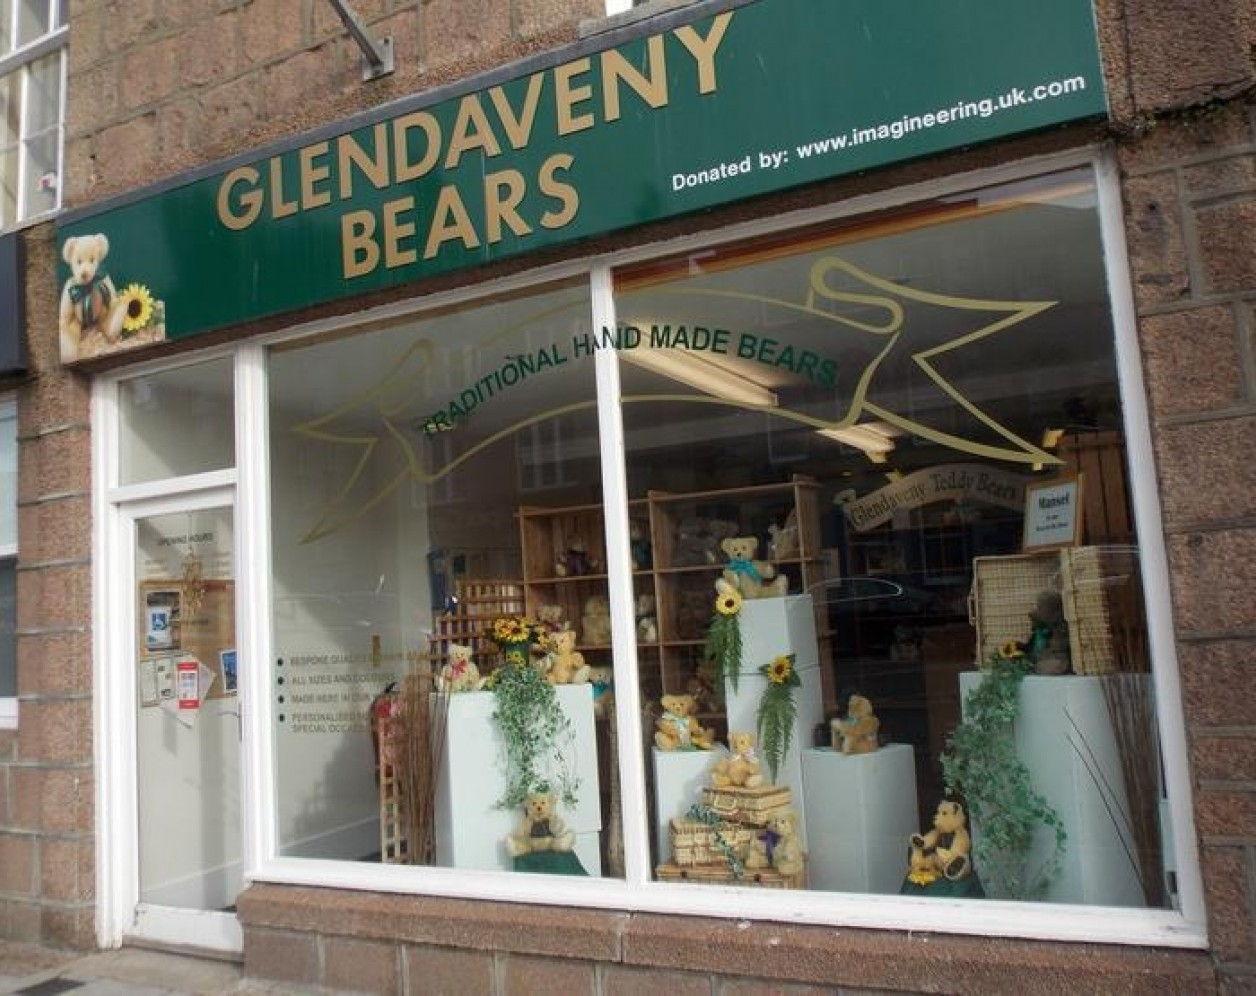 Glendaveny Teddy Bears